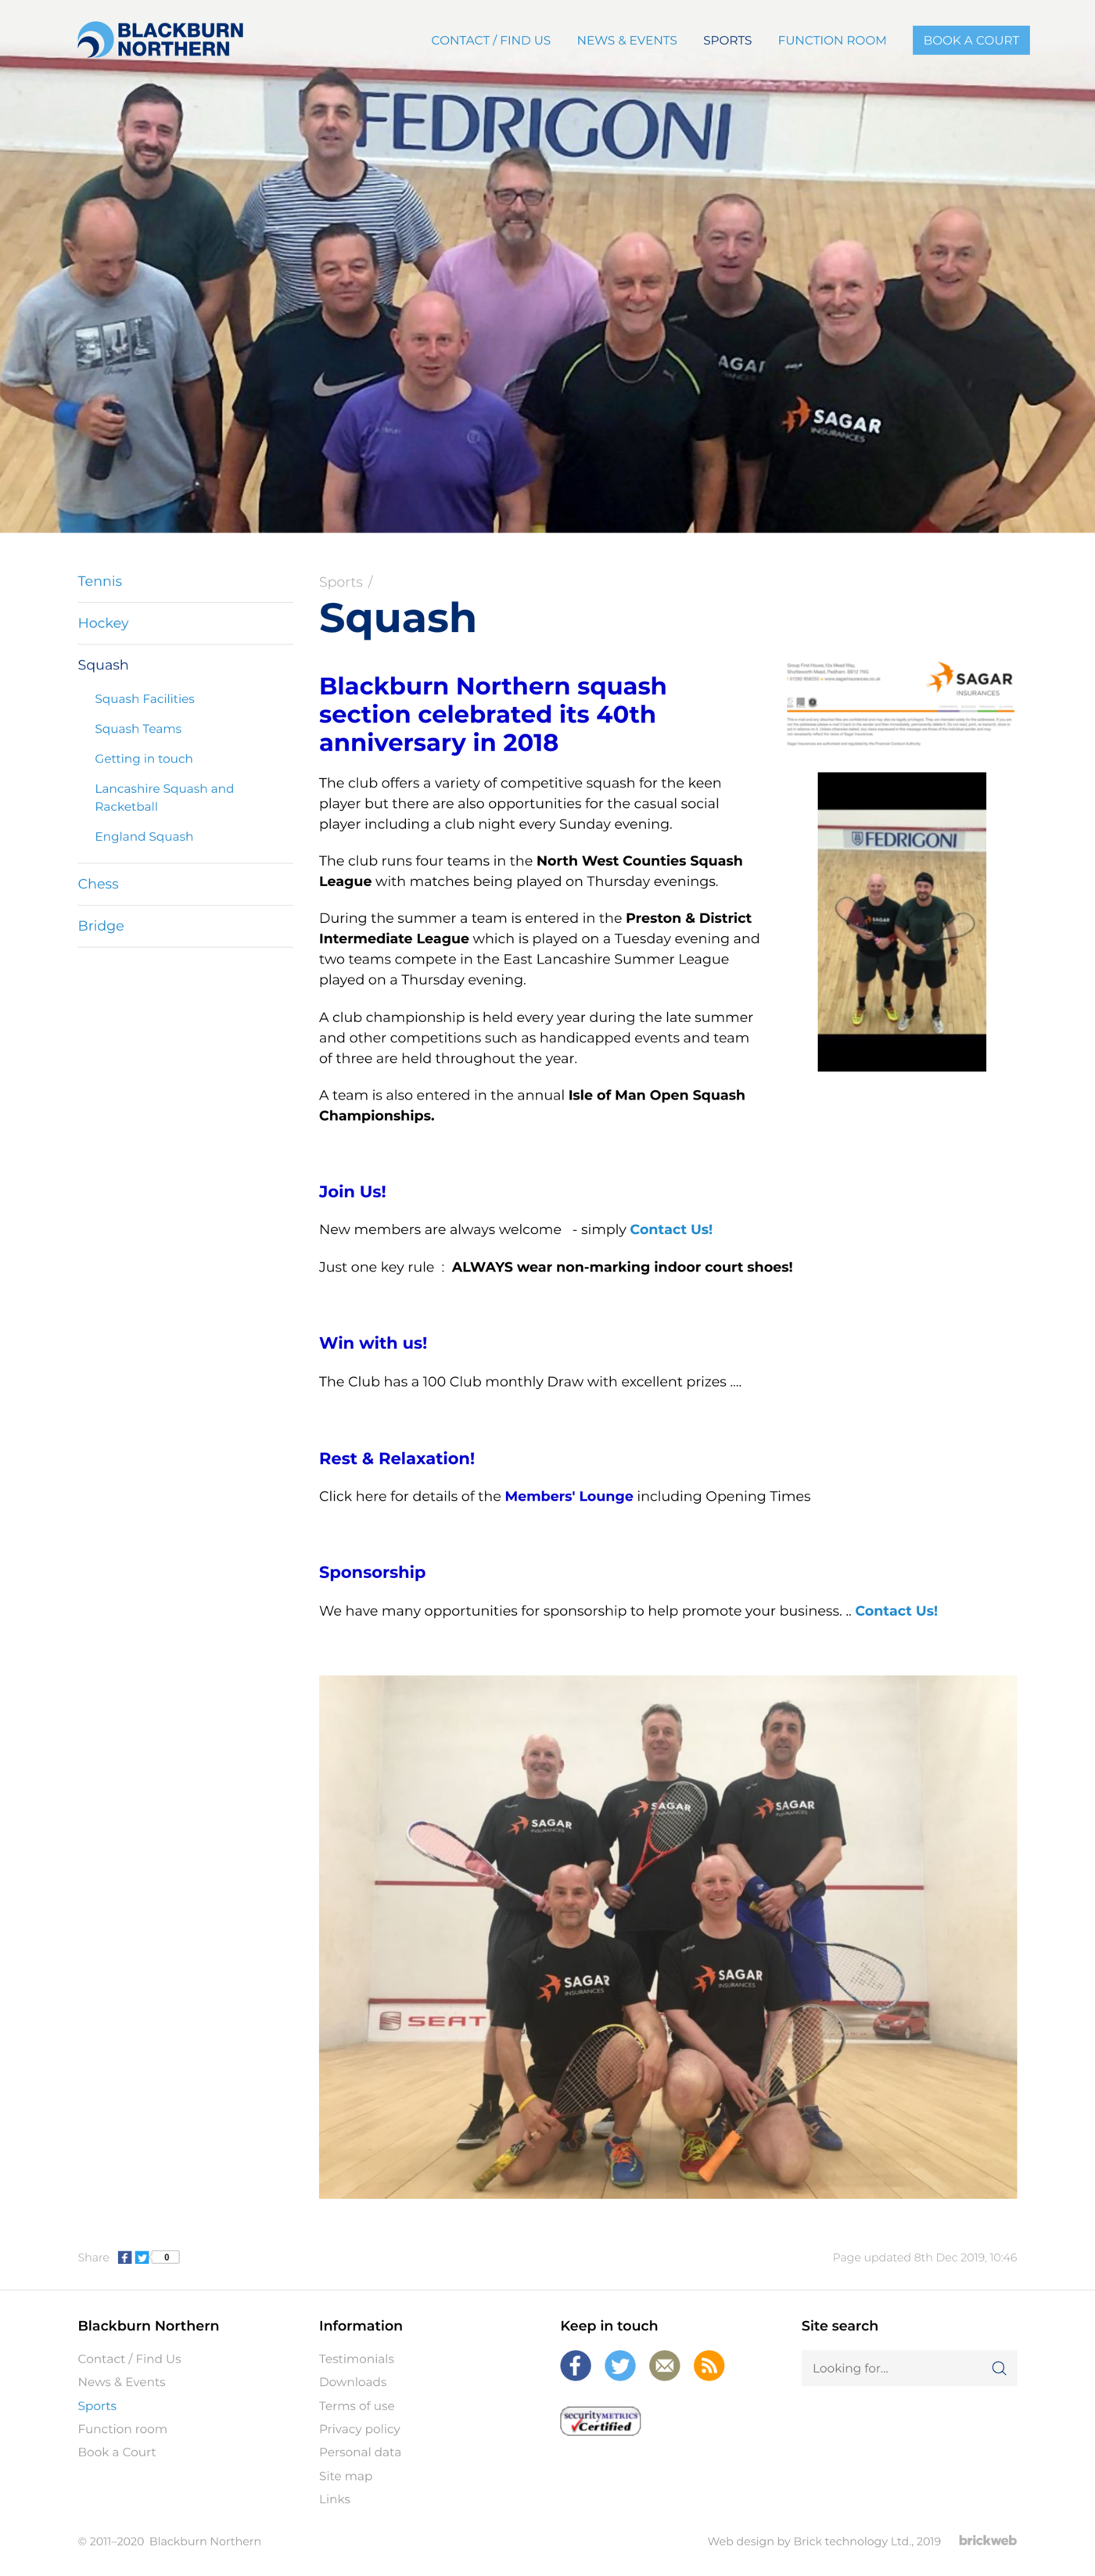 Blackburn Northern Sports Club Squash